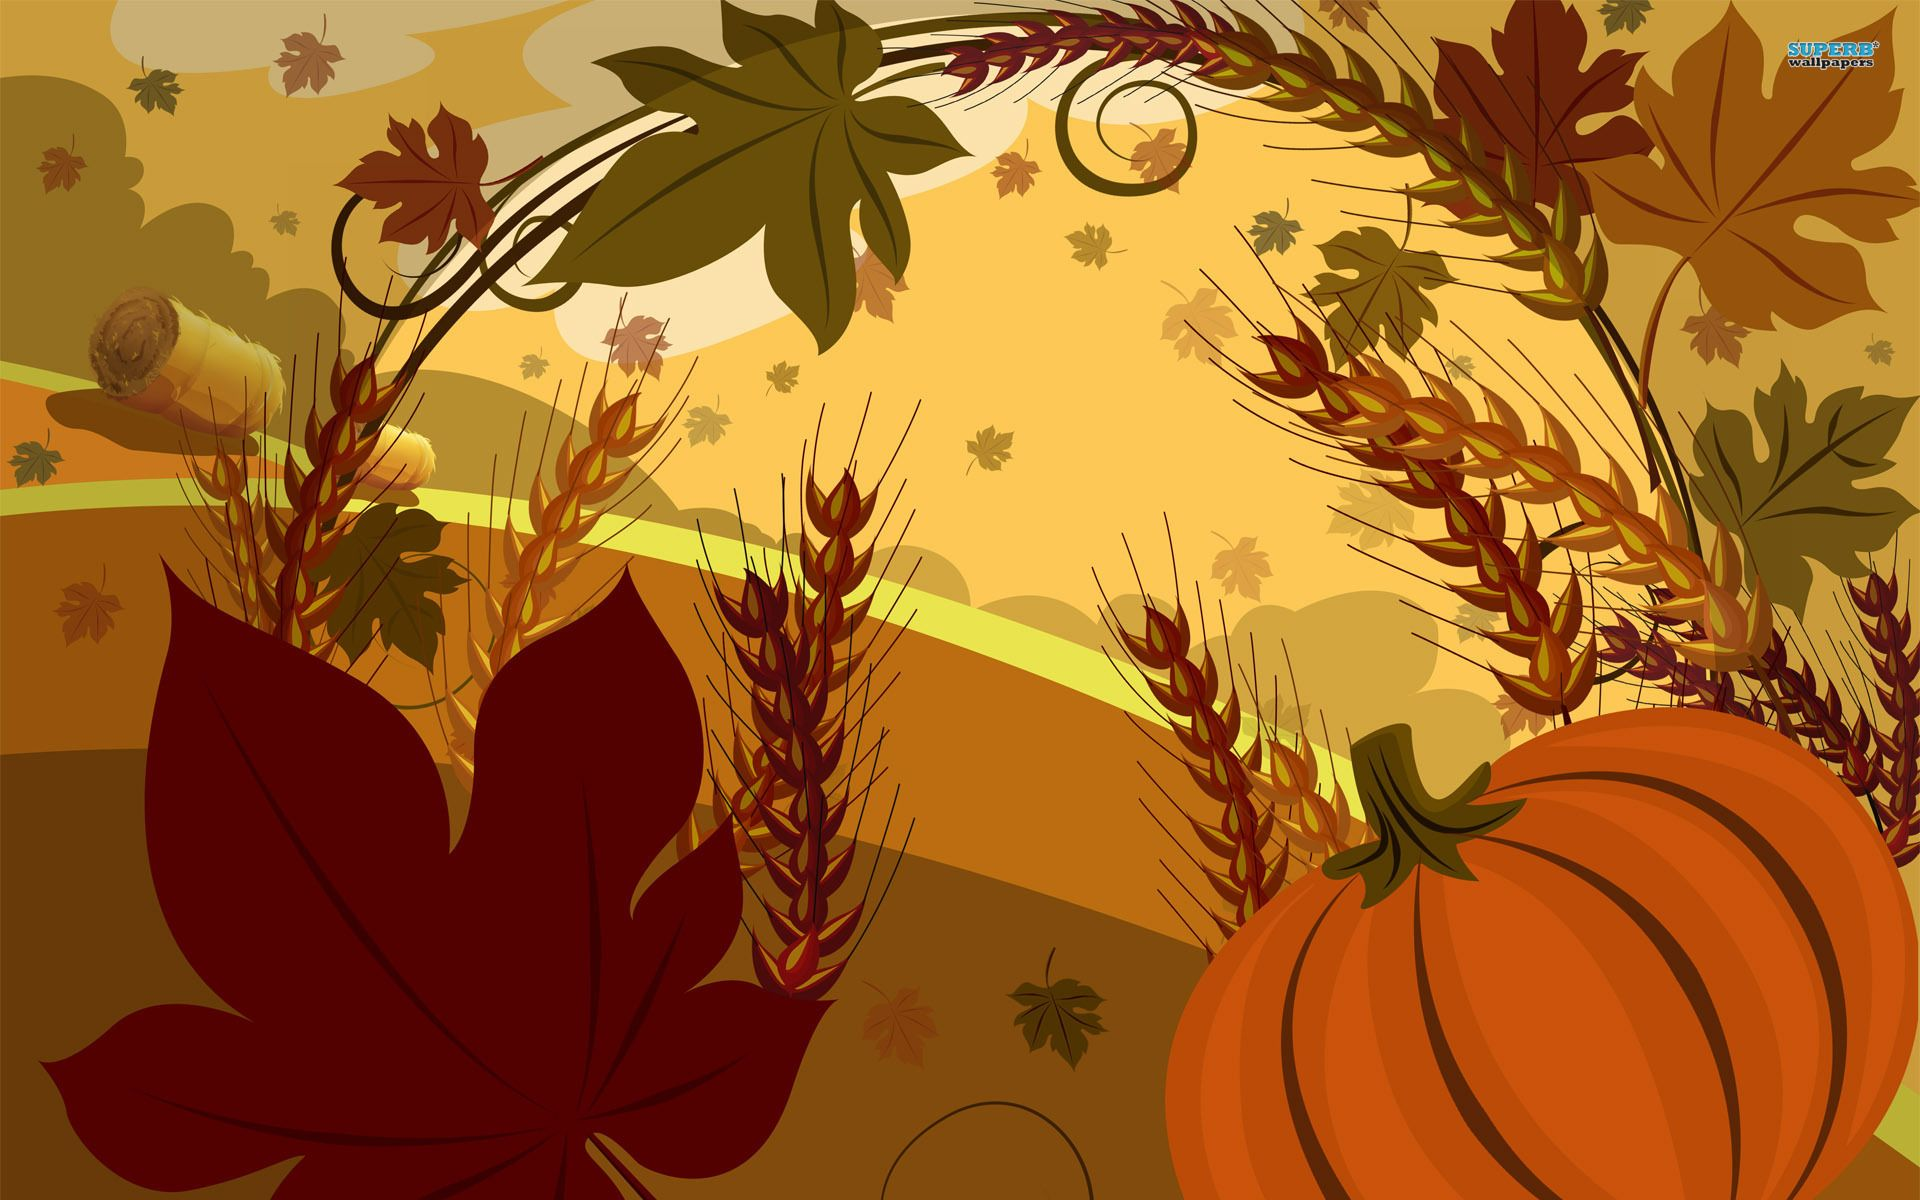 cute thanksgiving wallpaper hd desktop with id 16506 on celebration category in amazing wallpaperz cute thanksgiving wallpaper hd desktop is one from many